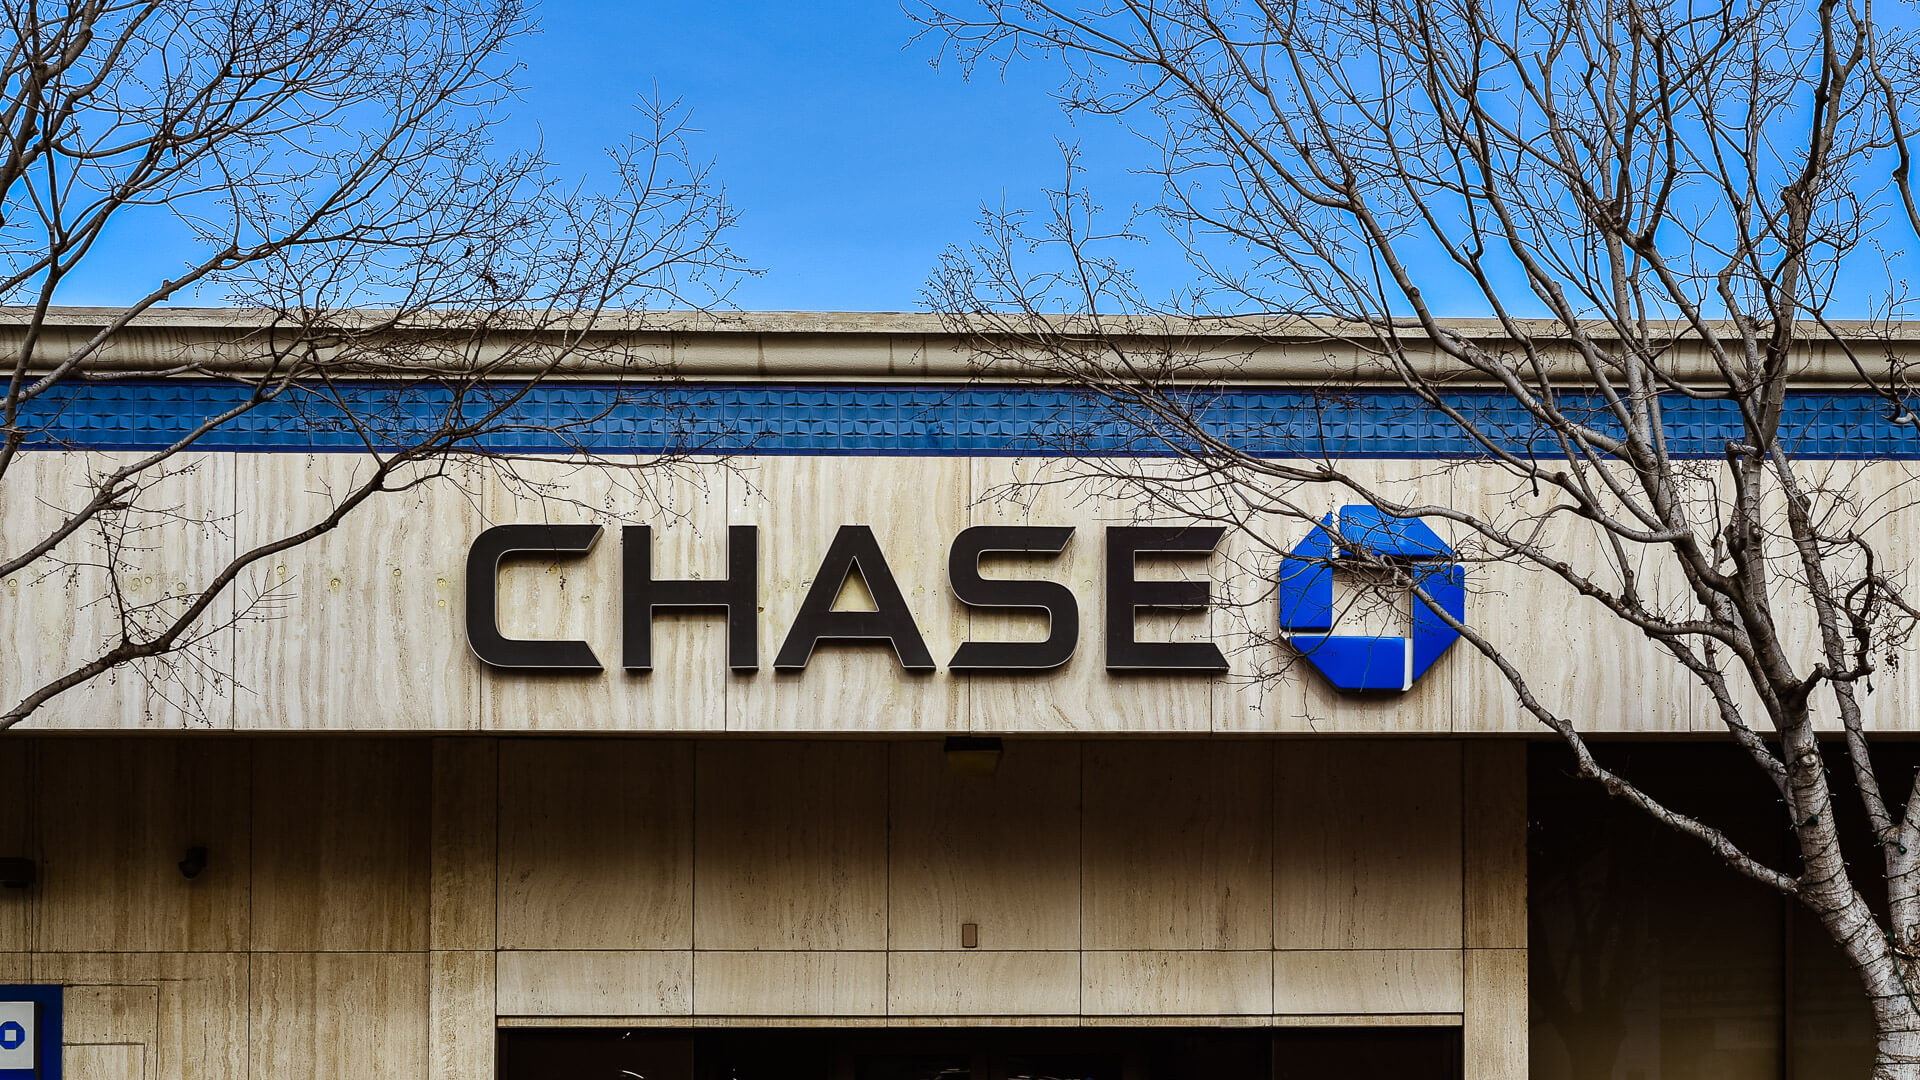 Chase Bank Review 2019: Is It the Right Bank for You?